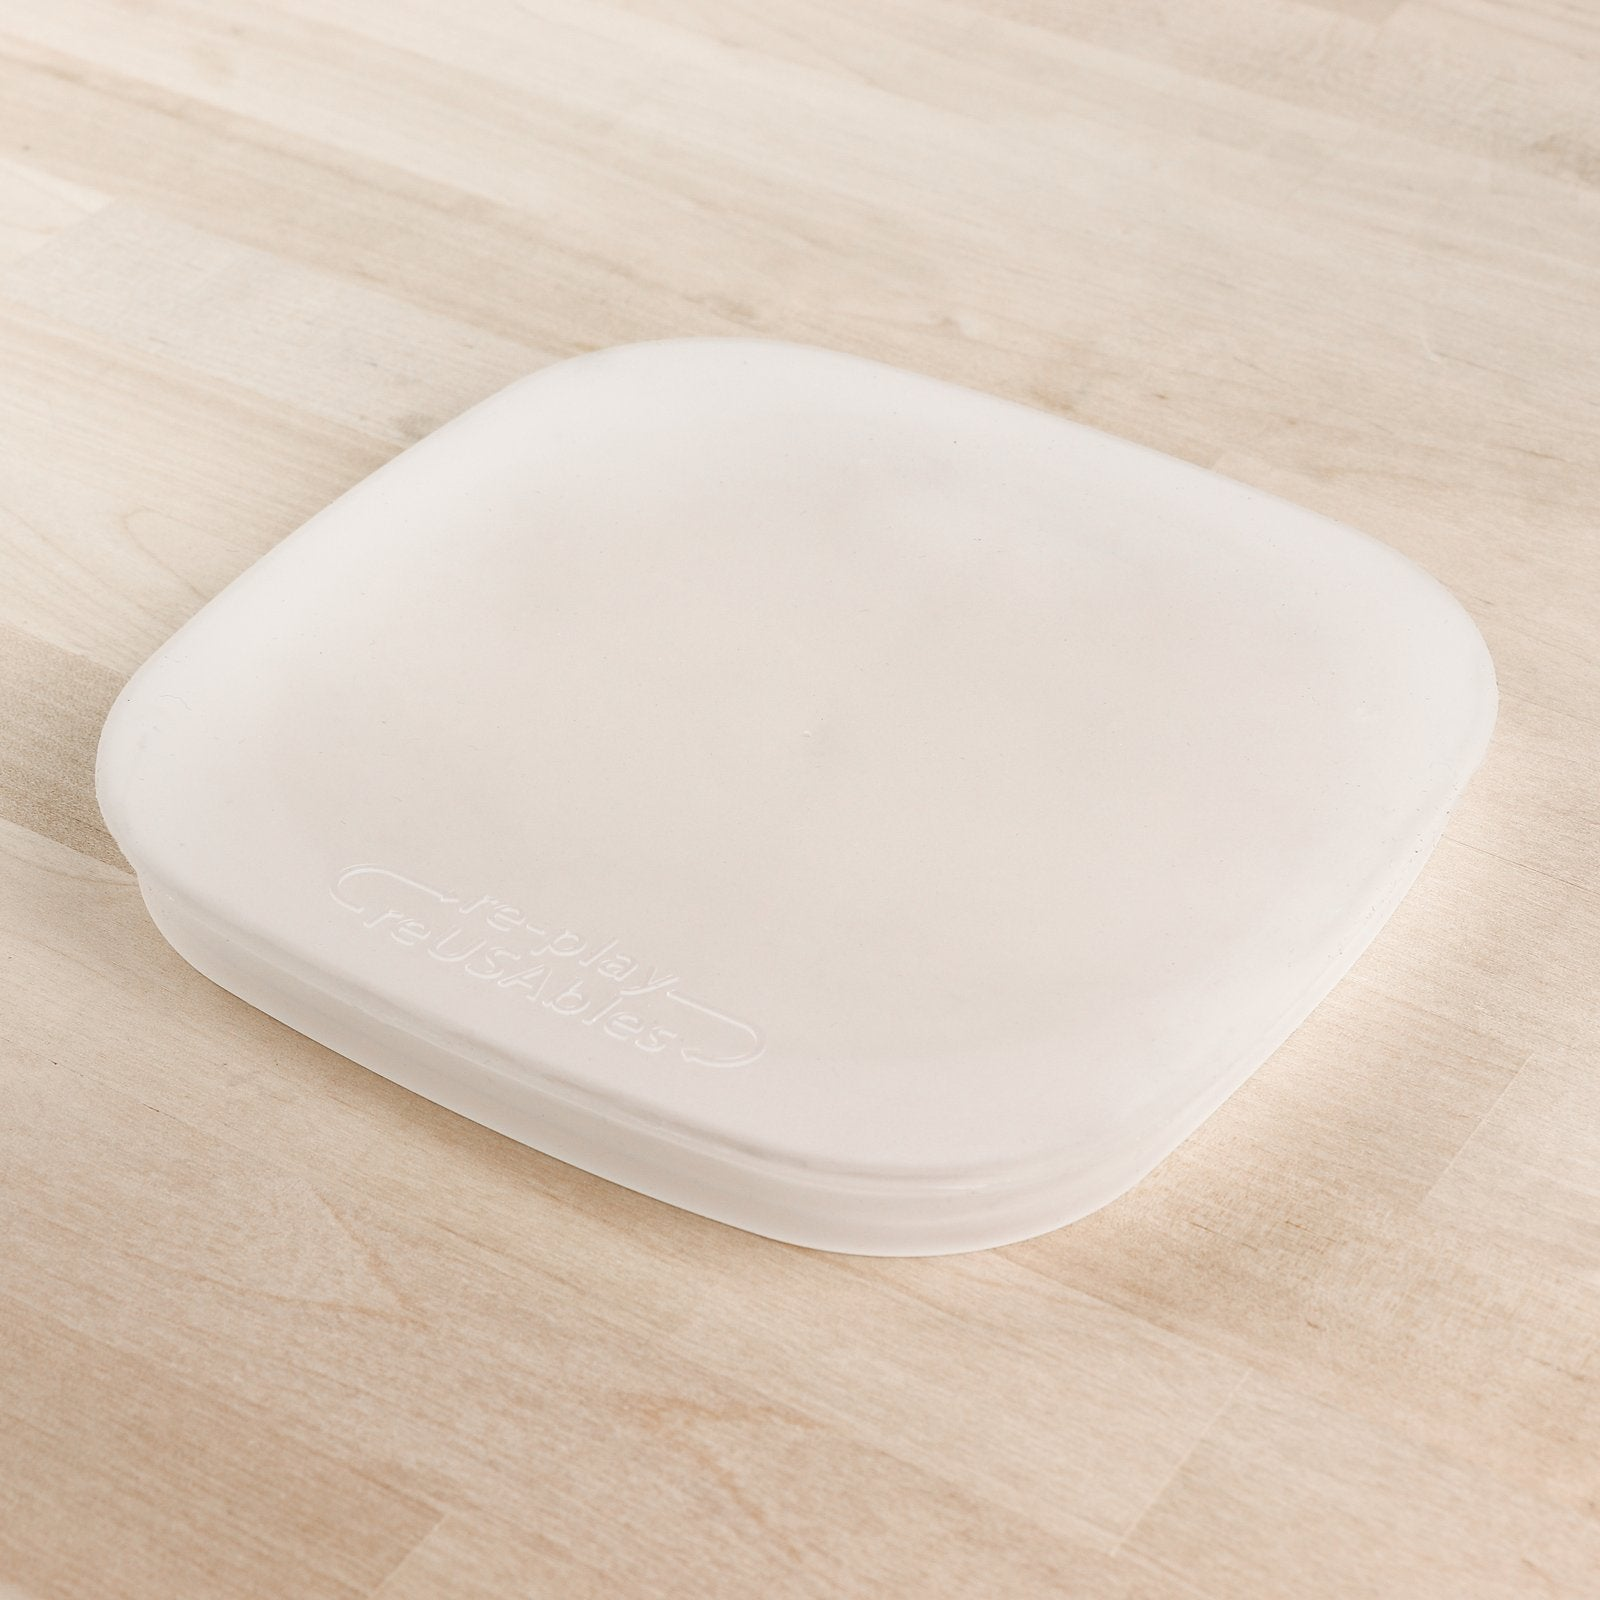 Tapa Silicona para Plato Replay Recycled